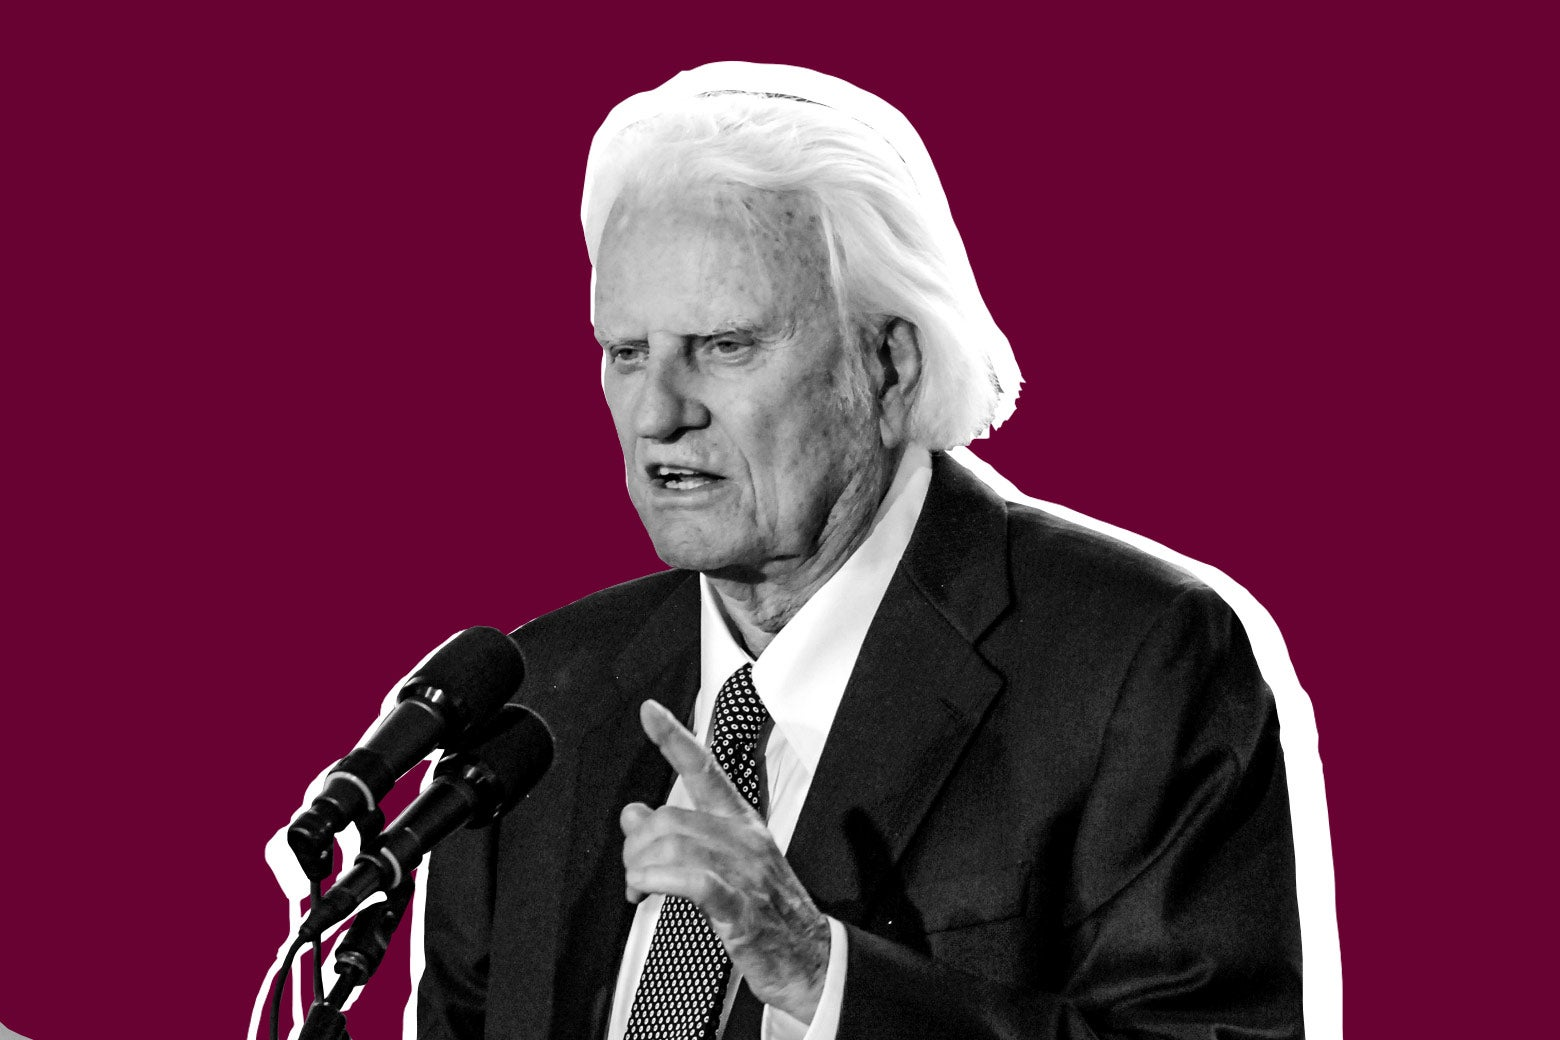 Billy Graham addresses the audience from the stage during the Billy Graham Library dedication service on May 31, 2007, in Charlotte, North Carolina.